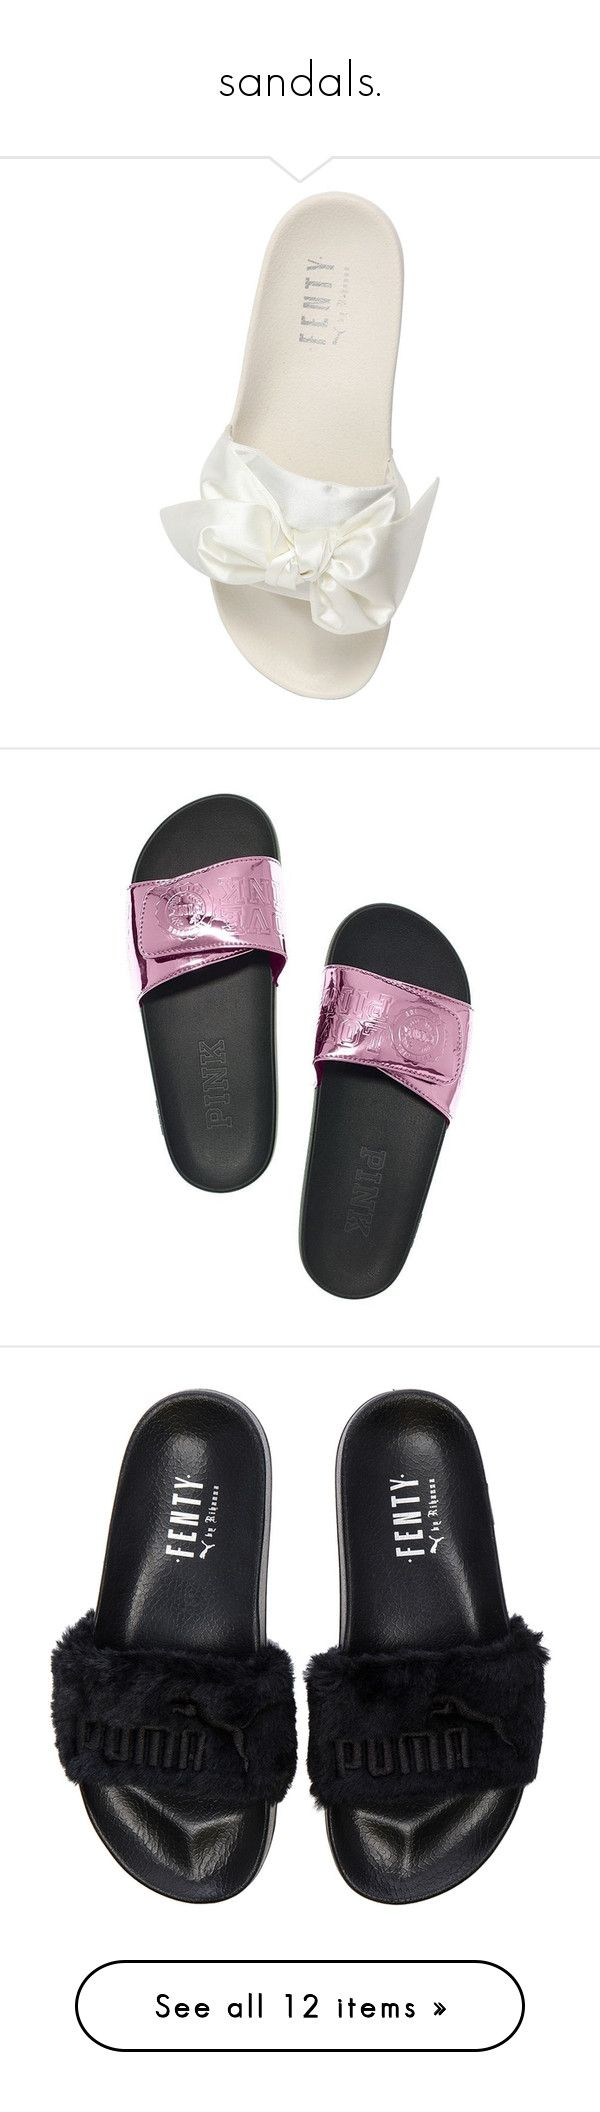 """""""sandals."""" by originalimanim ❤ liked on Polyvore featuring shoes, sandals, bow slide sandal, white shoes, satin sandals, bow shoes, puma footwear, victoria secret shoes, berry shoes and victoria's secret"""